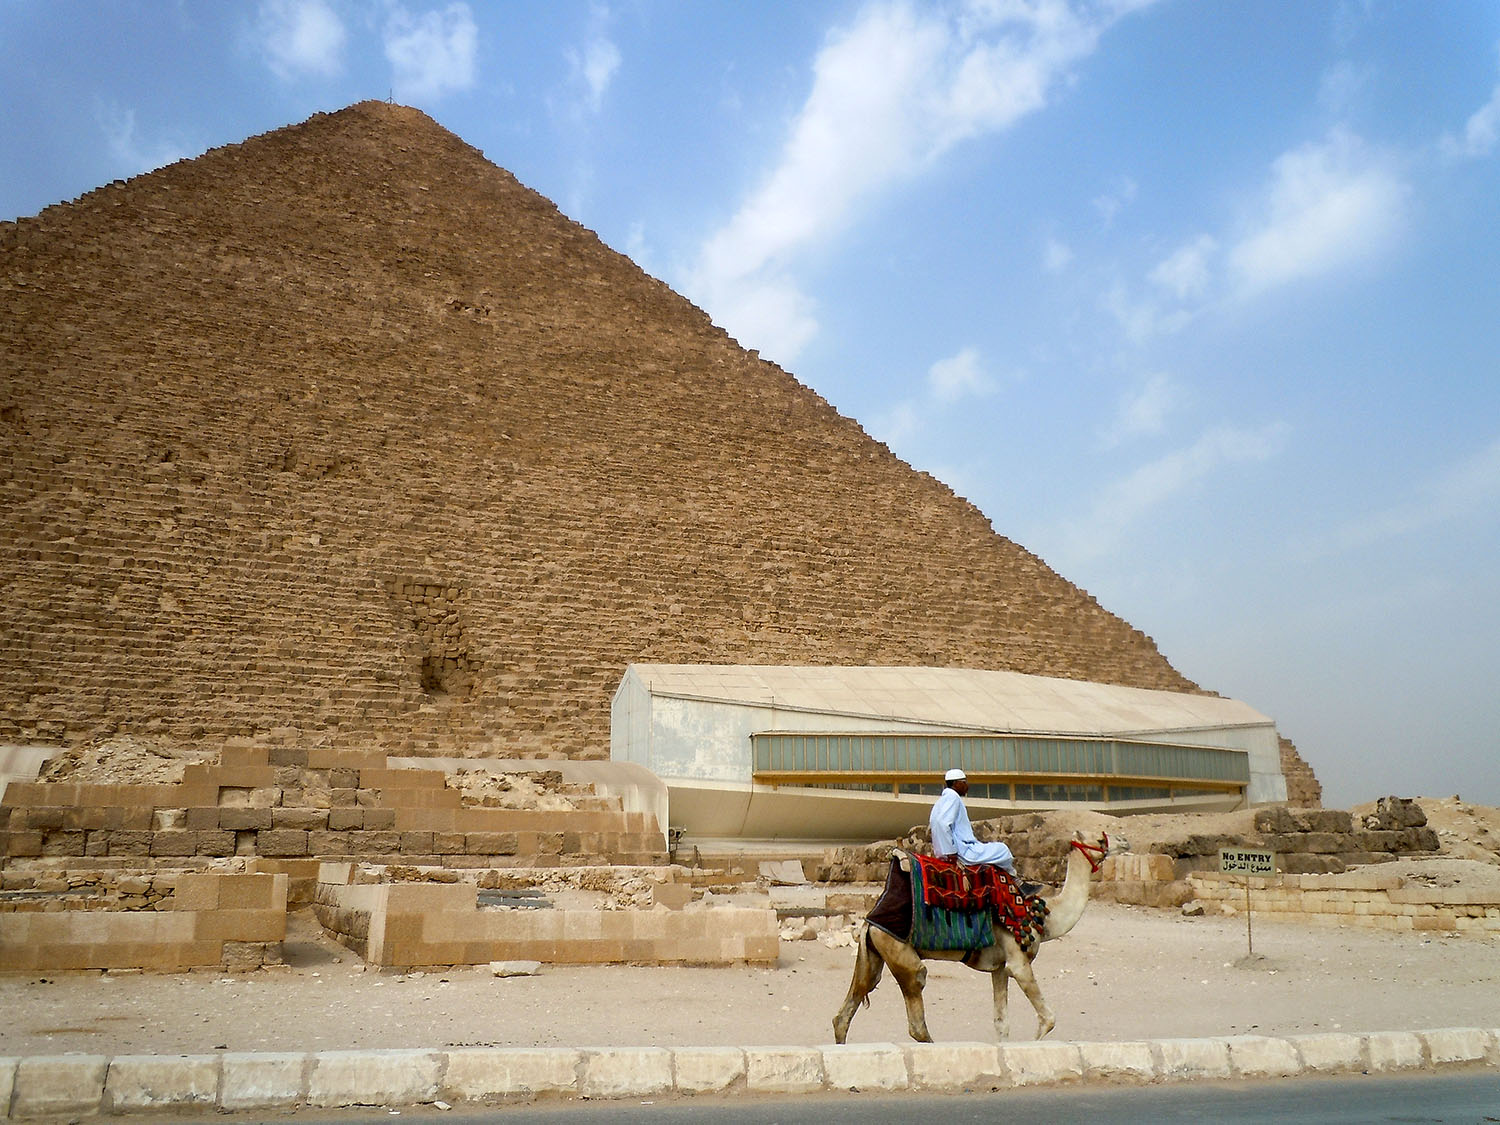 Giza Solar Boat Museum building at the foot of the Great Pyramid.